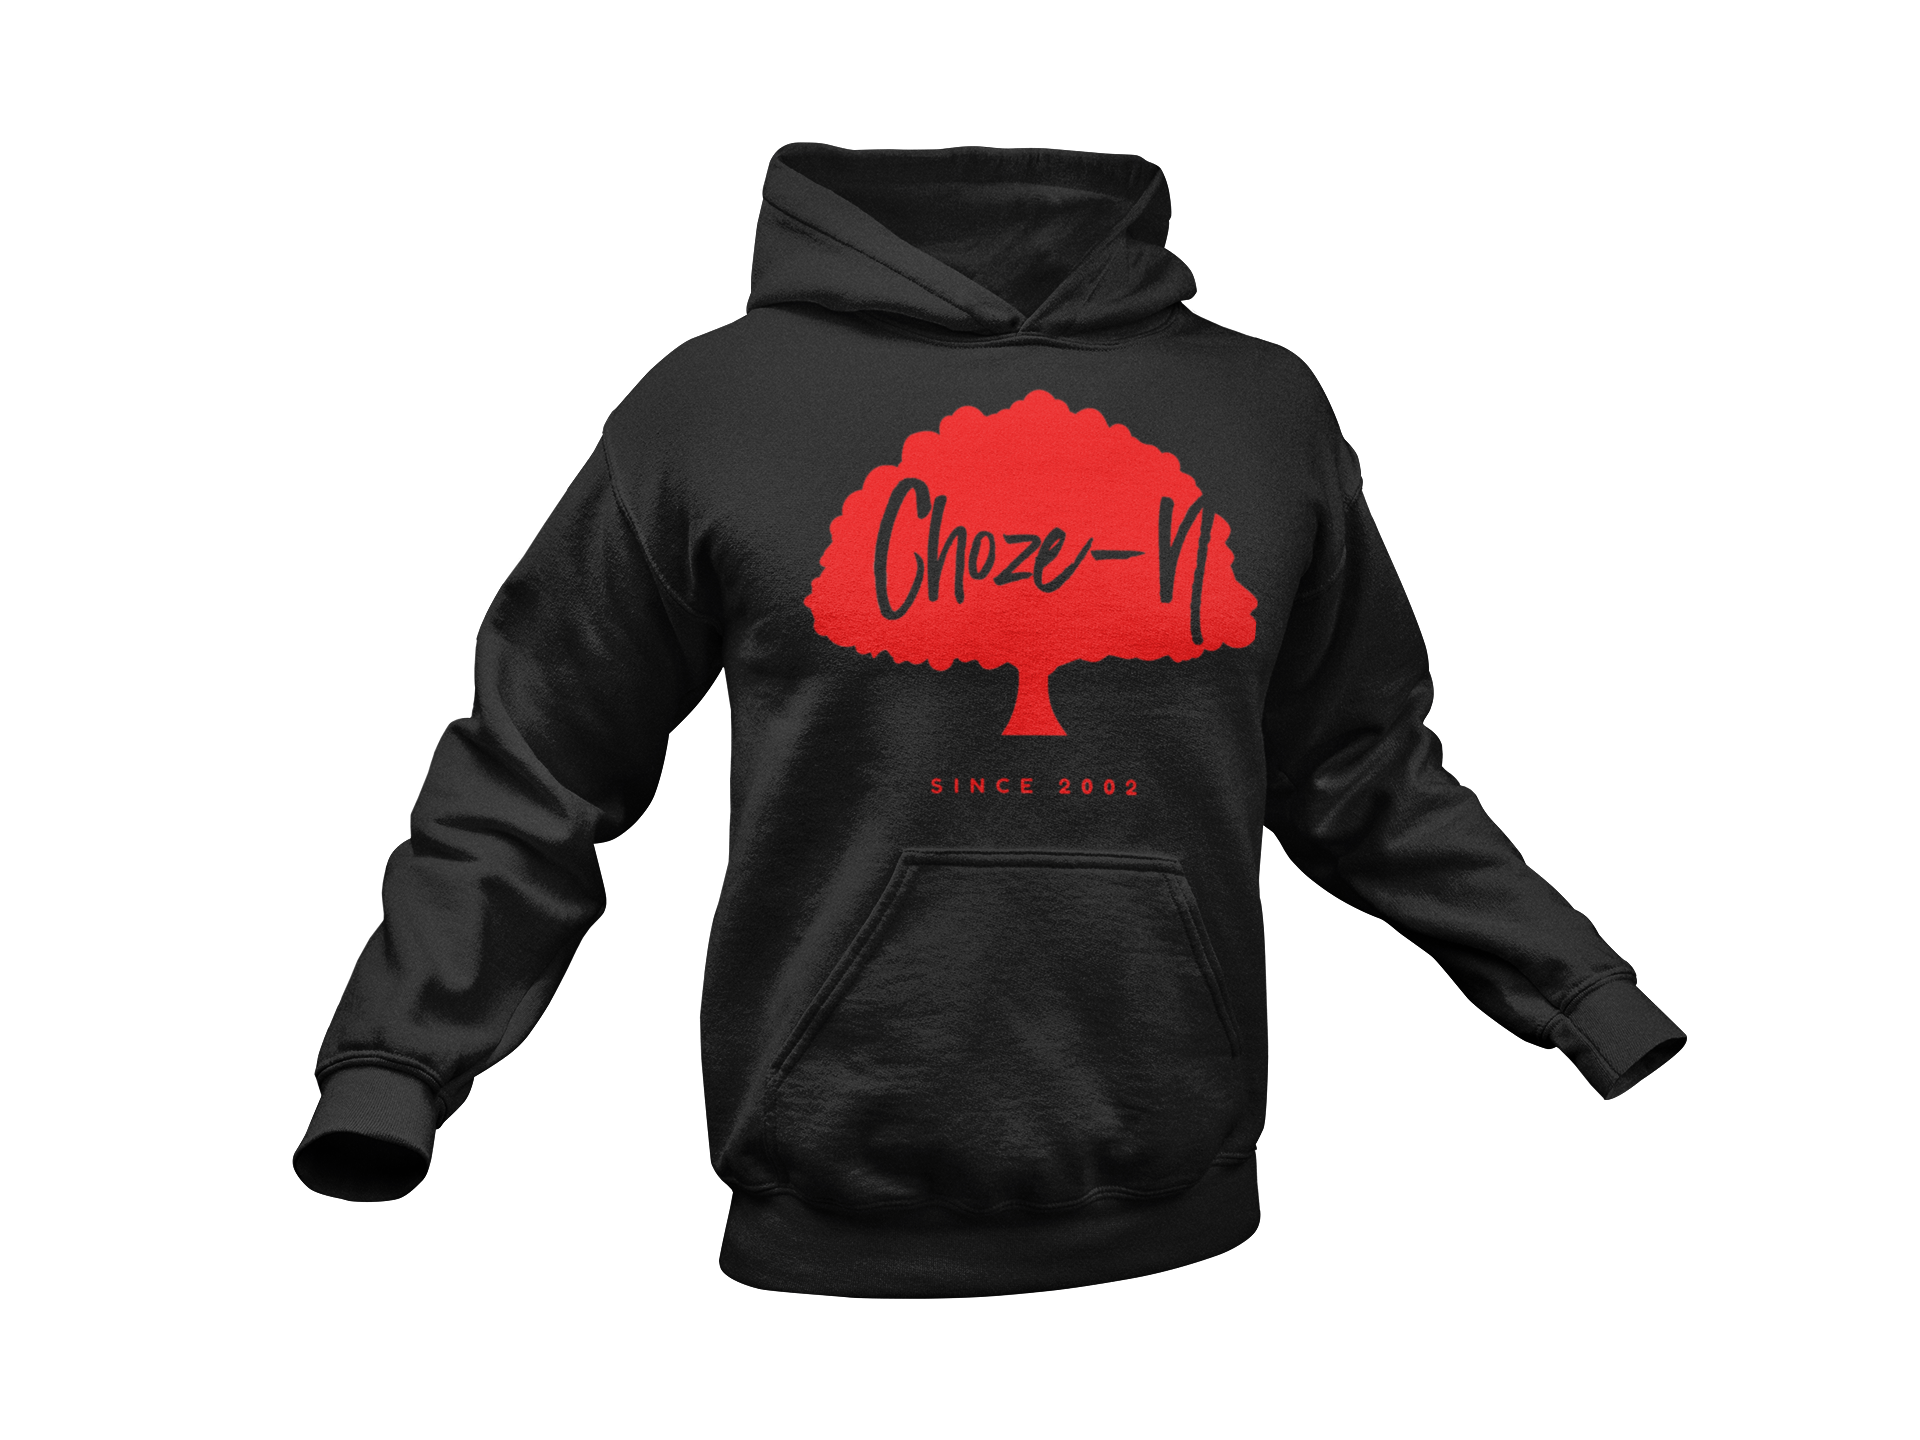 Choze-N Bold Black Hoodie Red Tree